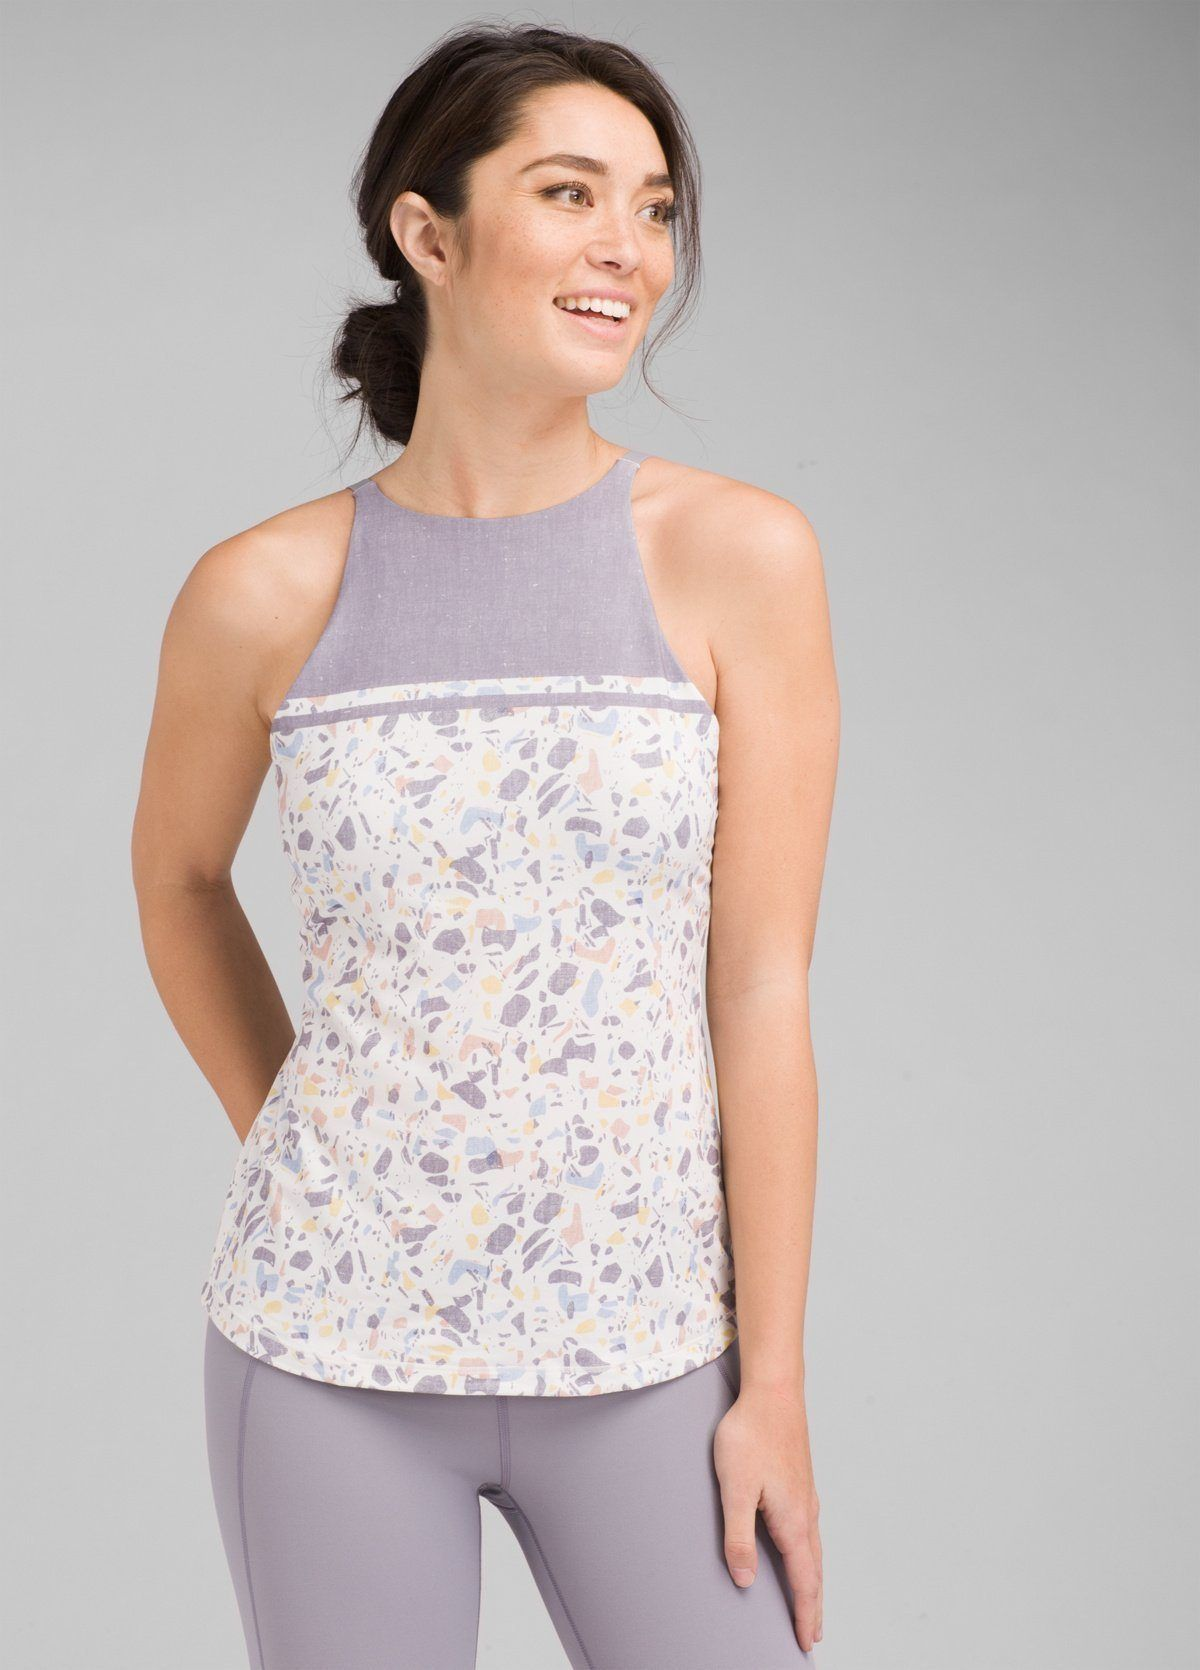 PrAna - W's Emsley Top - Recycled Polyester - Weekendbee - sustainable sportswear